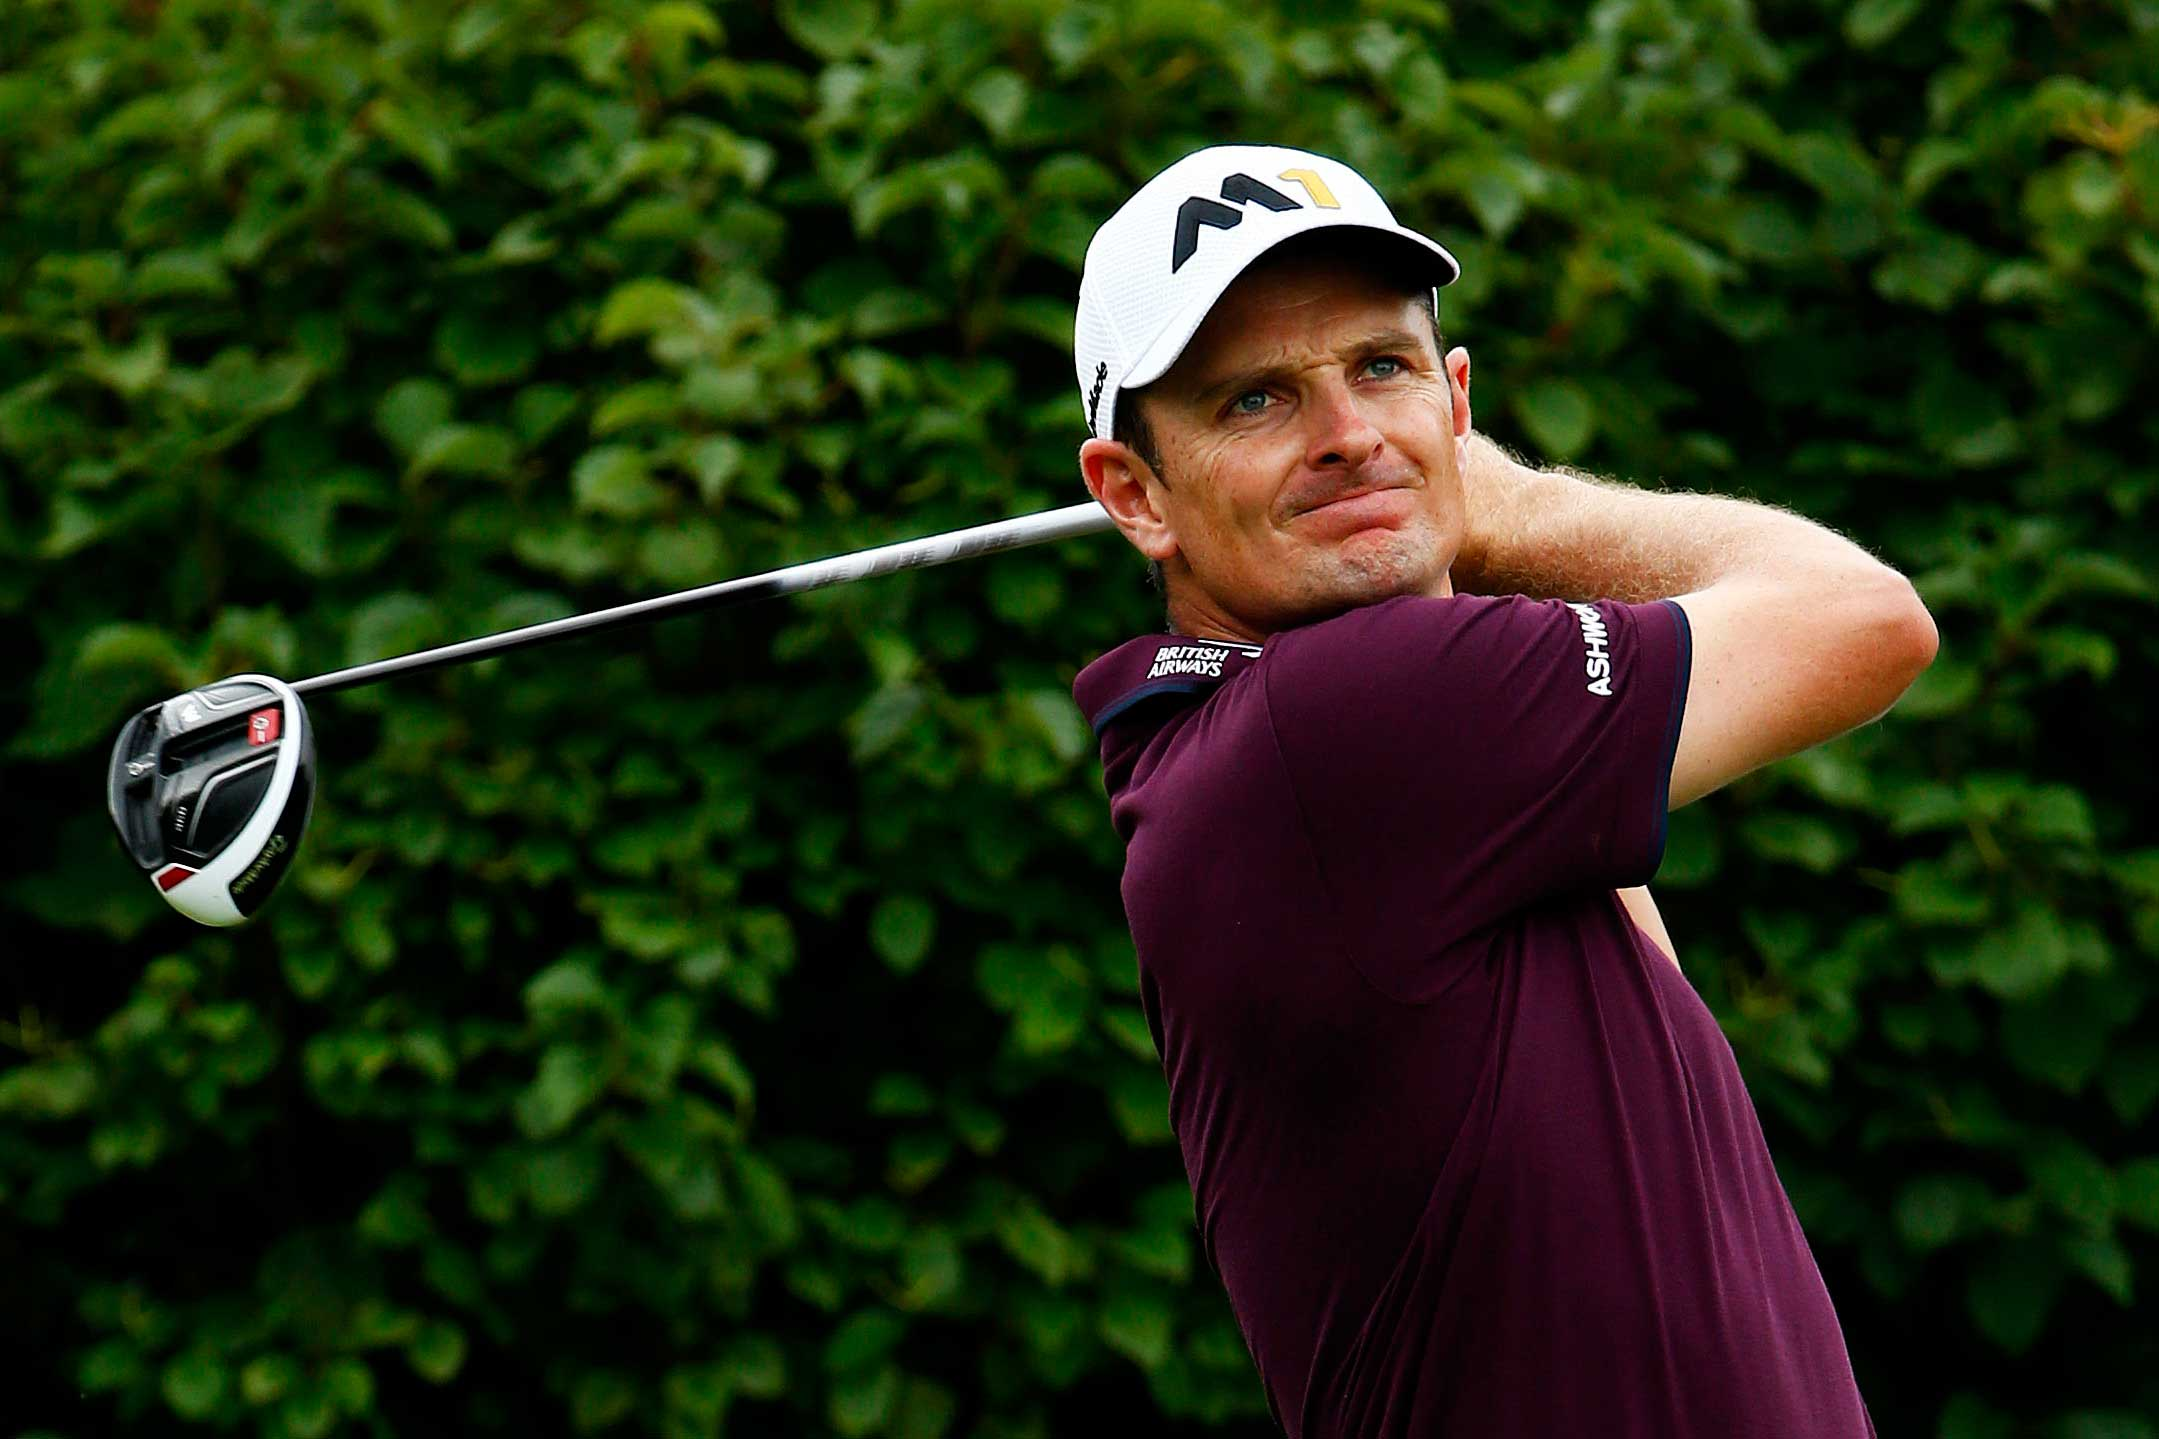 Justin Rose scooped the Zurich Classic of New Orleans in April (Photo: Getty Images)